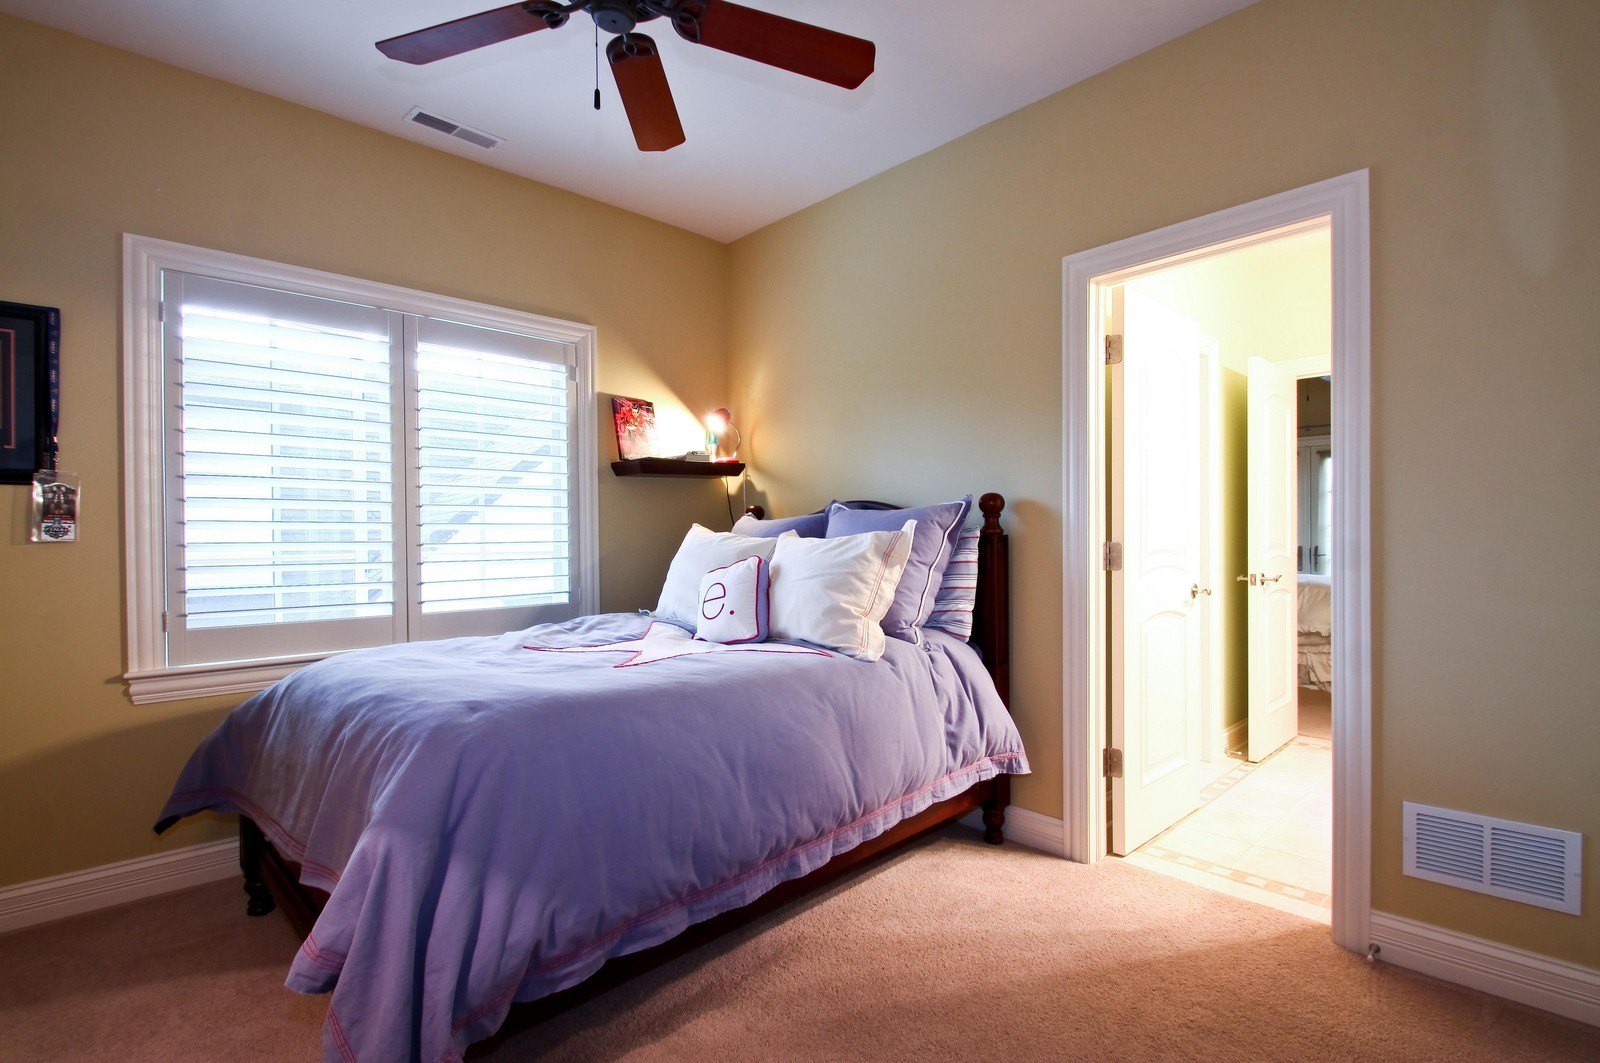 Real Estate Photography - 431 Adams Ave, Glencoe, IL, 60022 - Jack & Jill Bedroom Suite filled with sunlight.